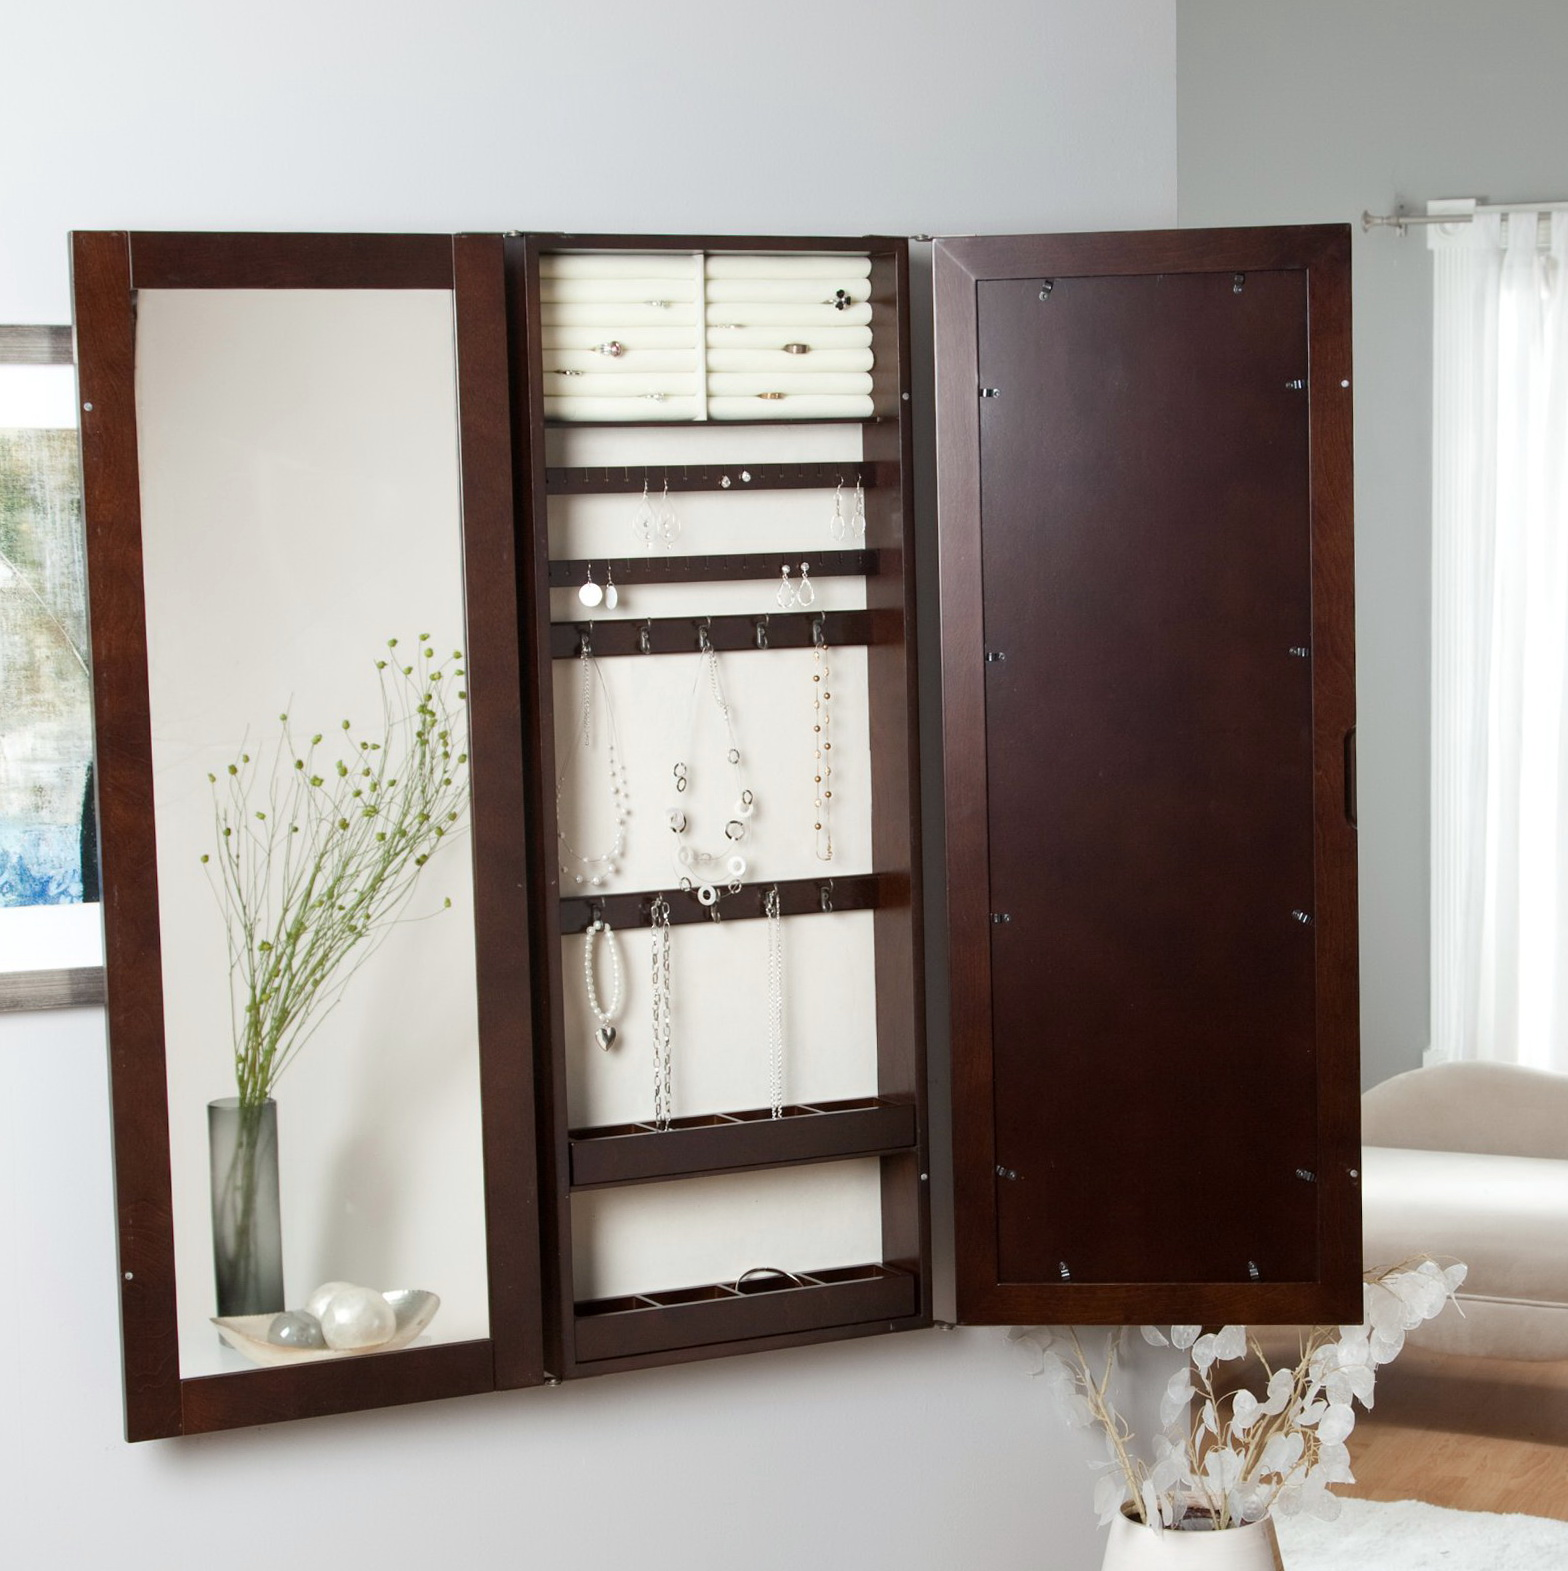 mirror jewelry cabinet ikea home design ideas. Black Bedroom Furniture Sets. Home Design Ideas